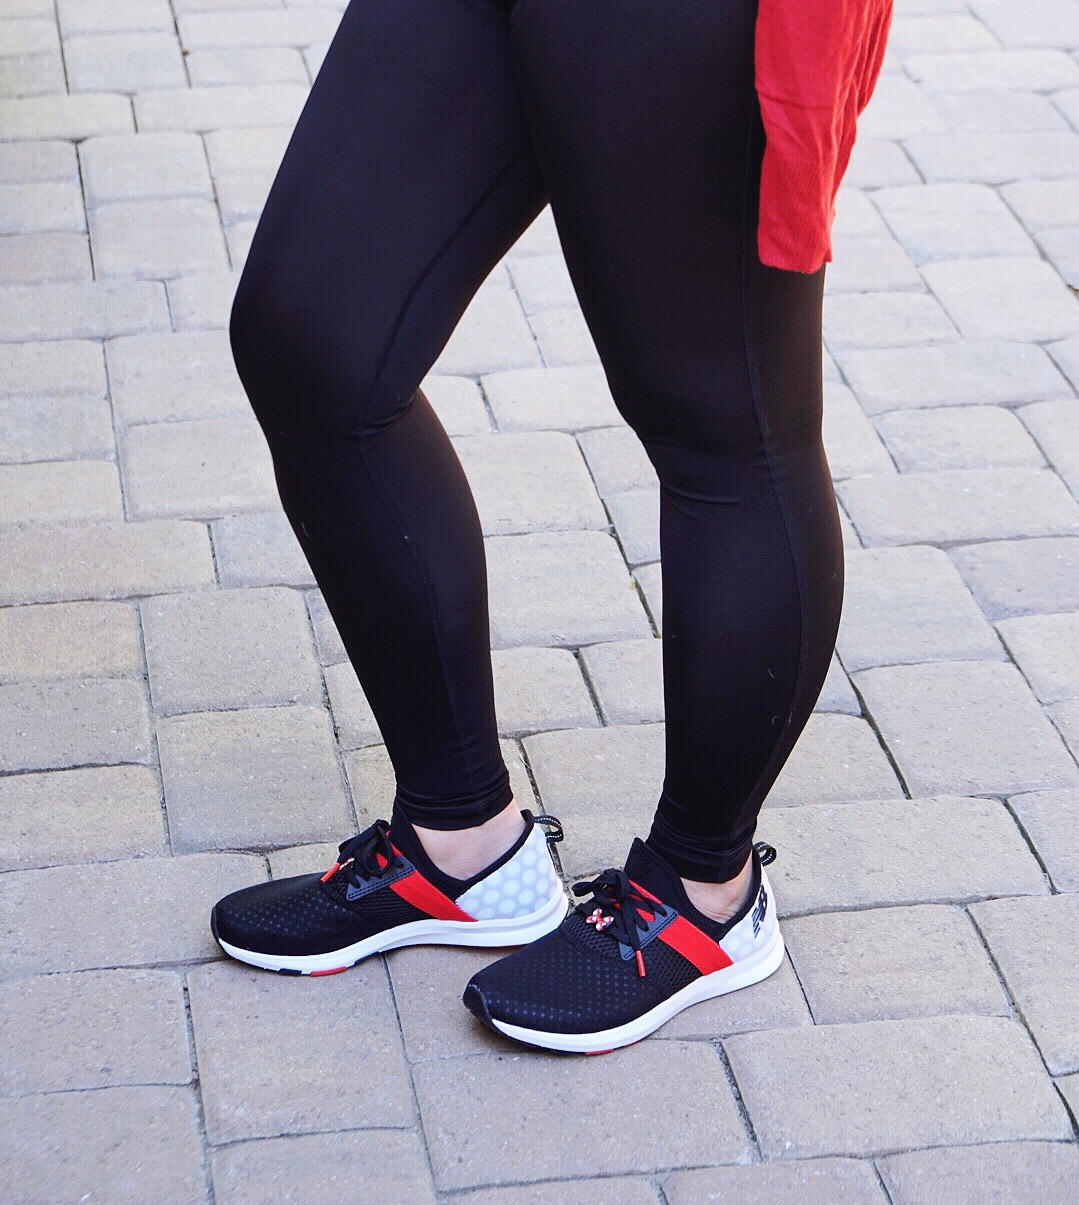 2df712851e8a54 While their maternity leggings provided relief for those pesky pregnancy  body symptoms like back, hip and leg pains, ...